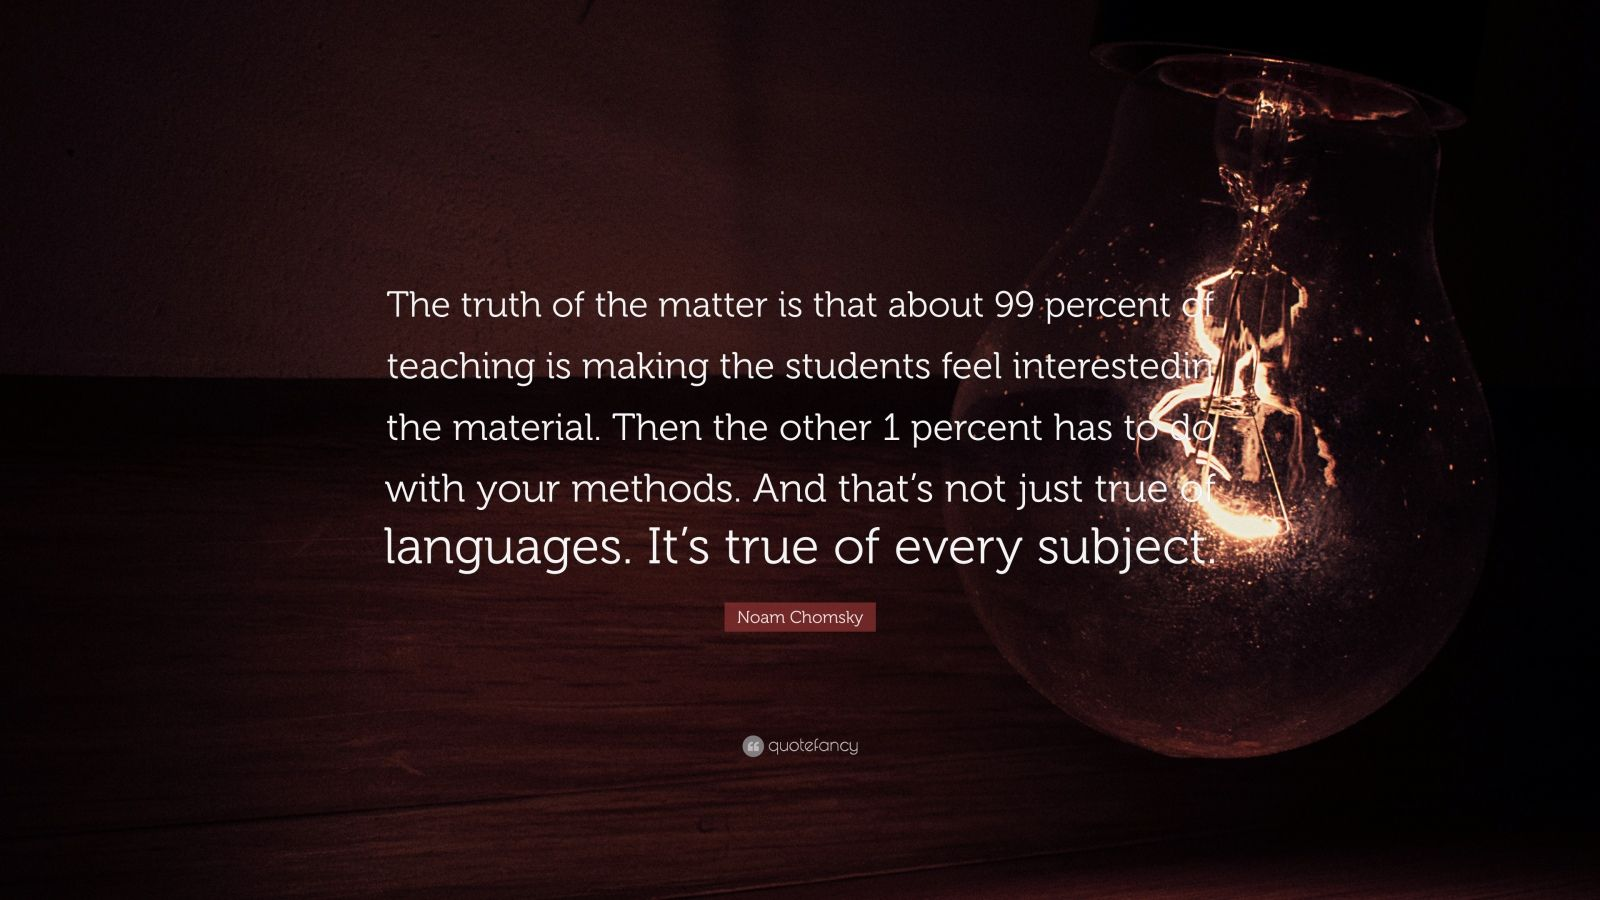 """Noam Chomsky Quote: """"The truth of the matter is that about 99 percent of teaching is making the students feel interestedin the material. Then the other 1 percent has to do with your methods. And that's not just true of languages. It's true of every subject."""""""